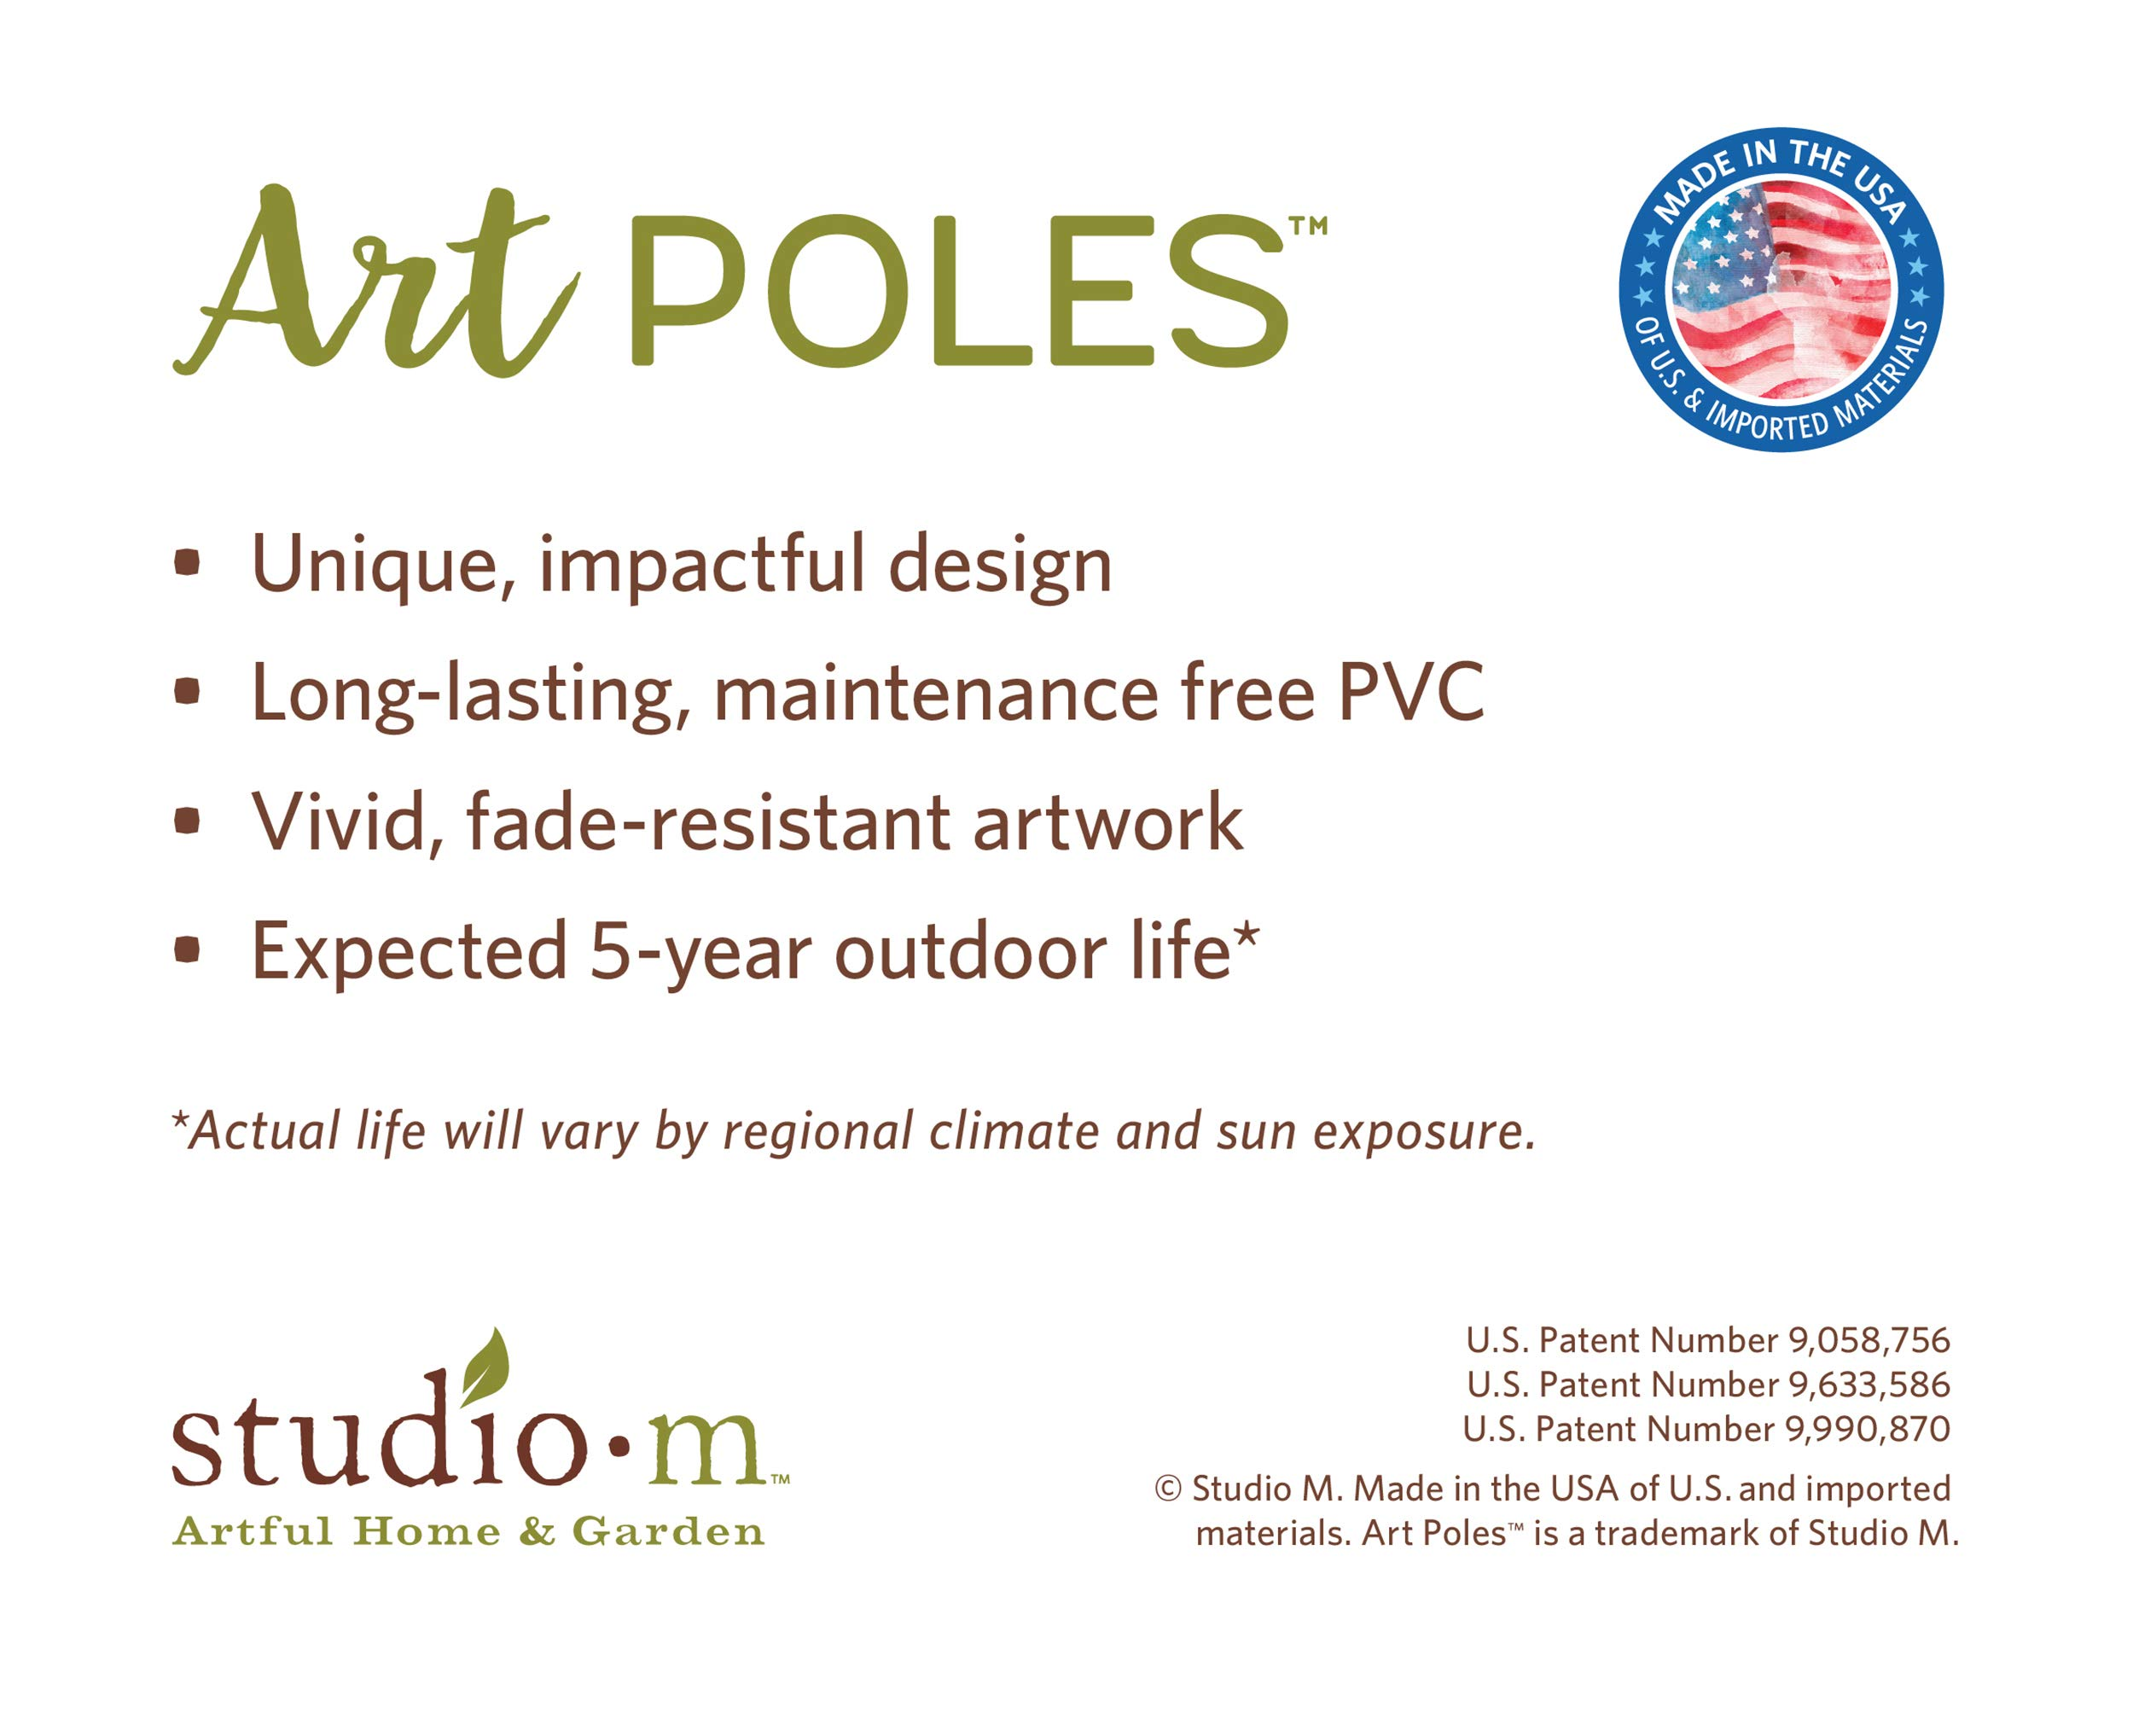 Studio M Love Garden Art Pole Bold Floral Outdoor Decorative Garden Post, Made in USA, 40 Inches Tall by Studio M (Image #6)